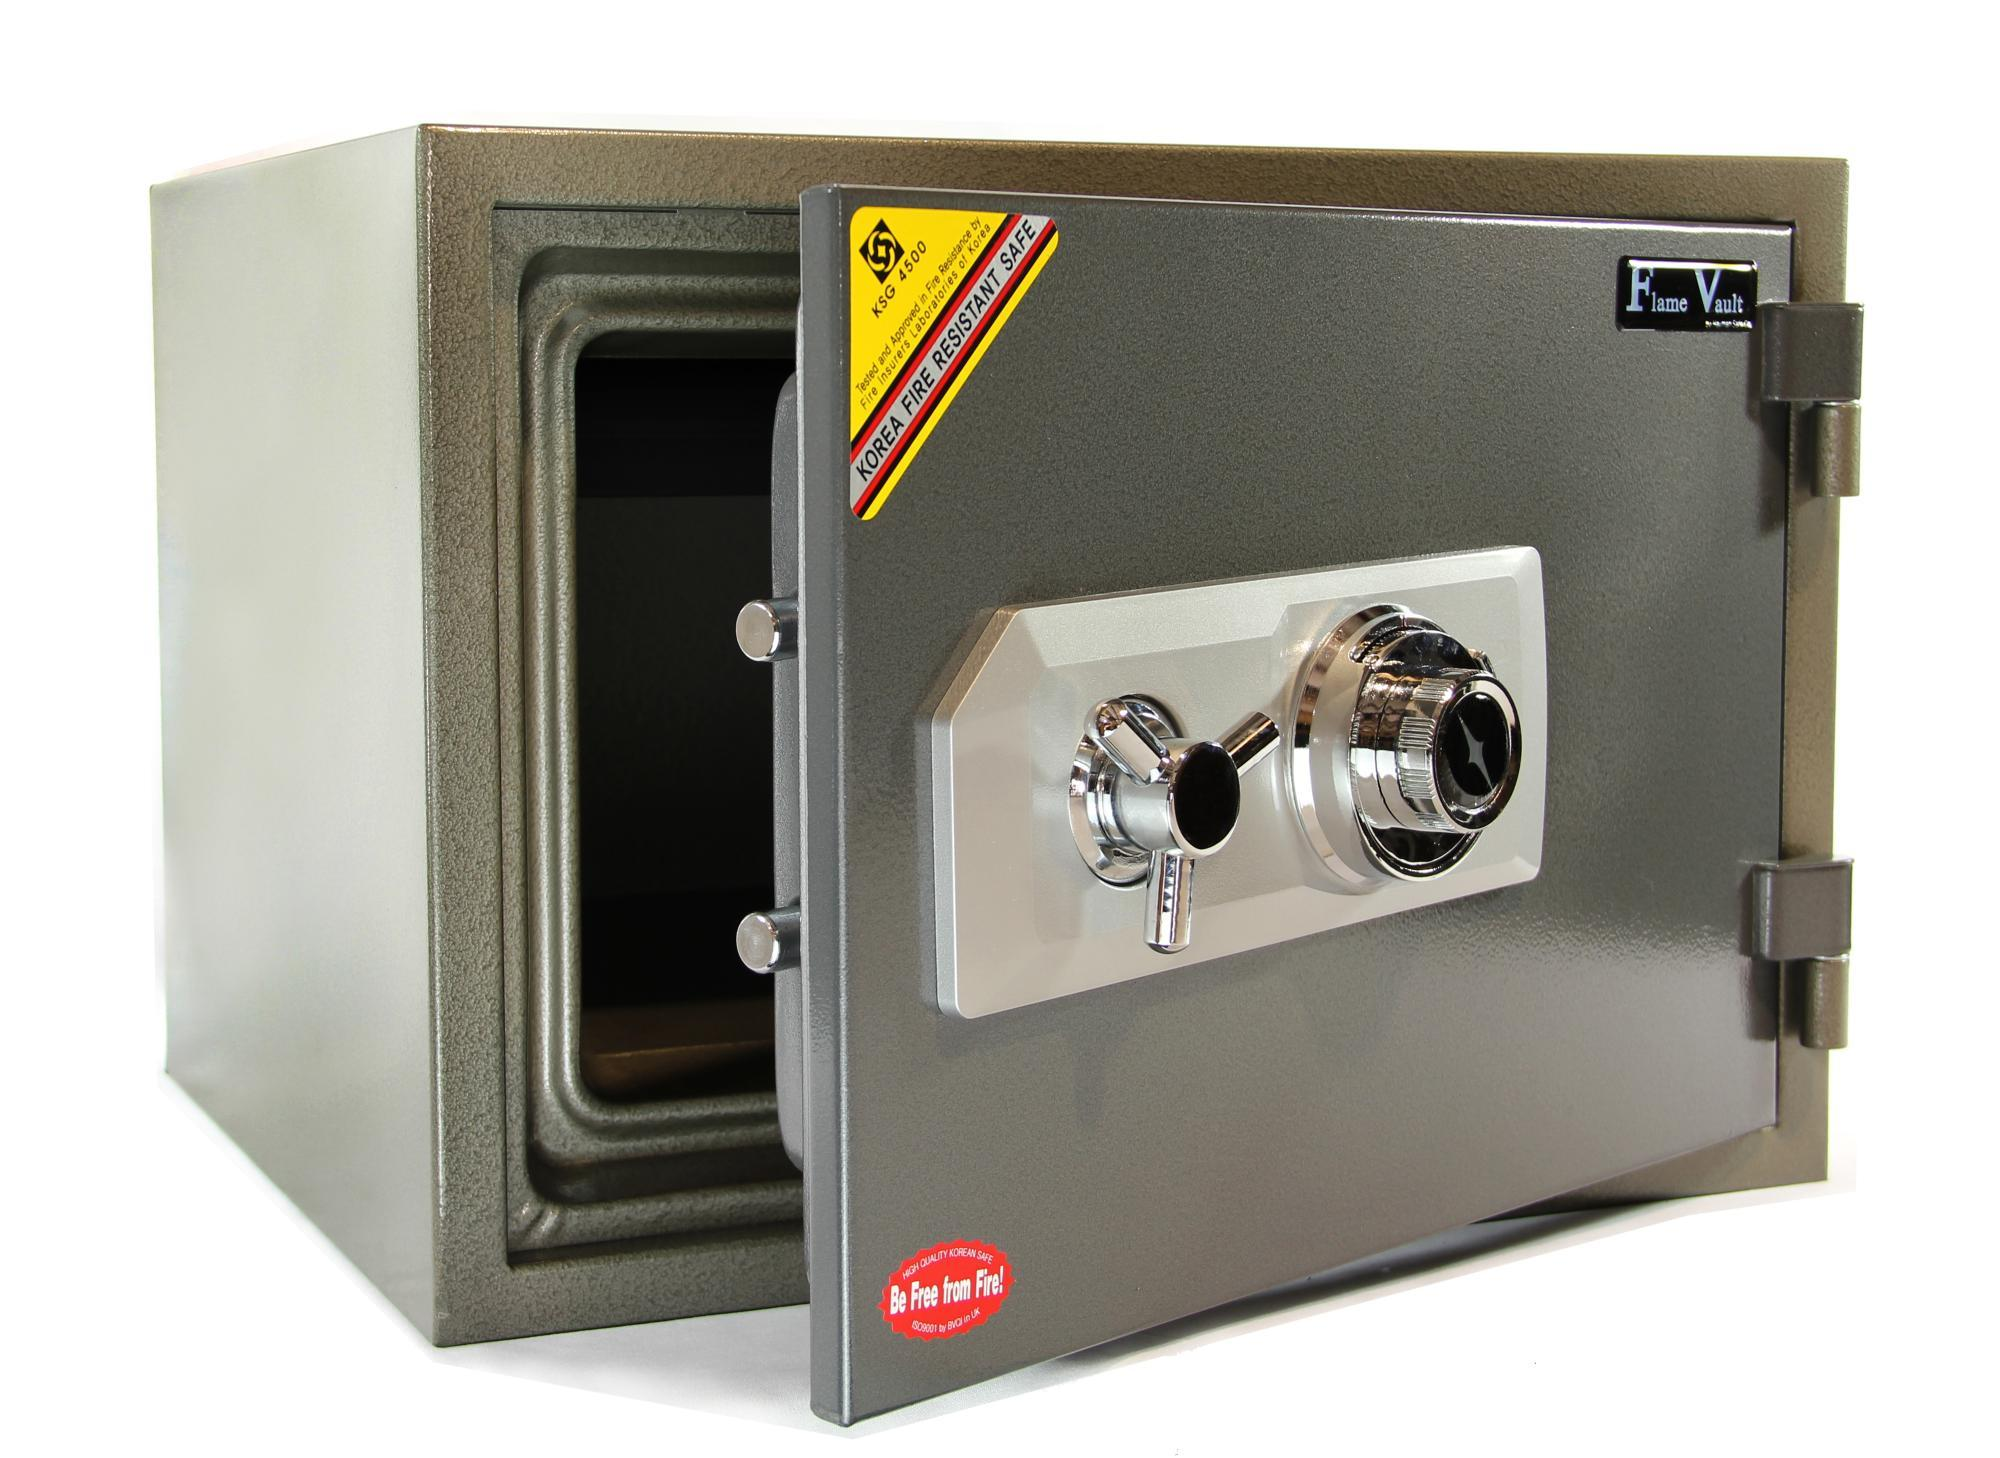 Fireproof Safes & Waterproof Chests - Hayman FV-137C FlameVault One Hour Fire Safe